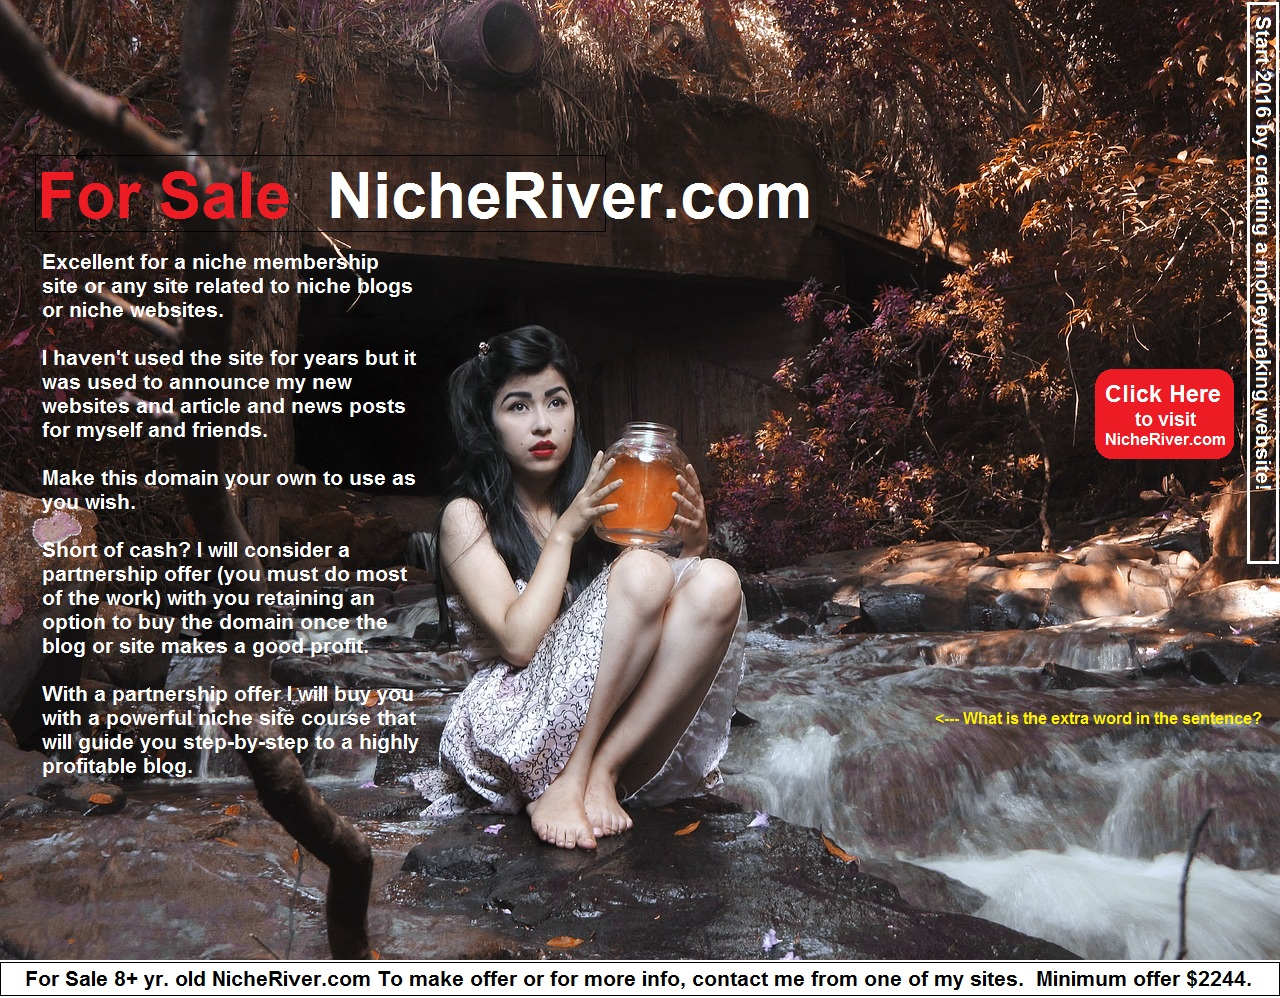 nicheriver.com for sale